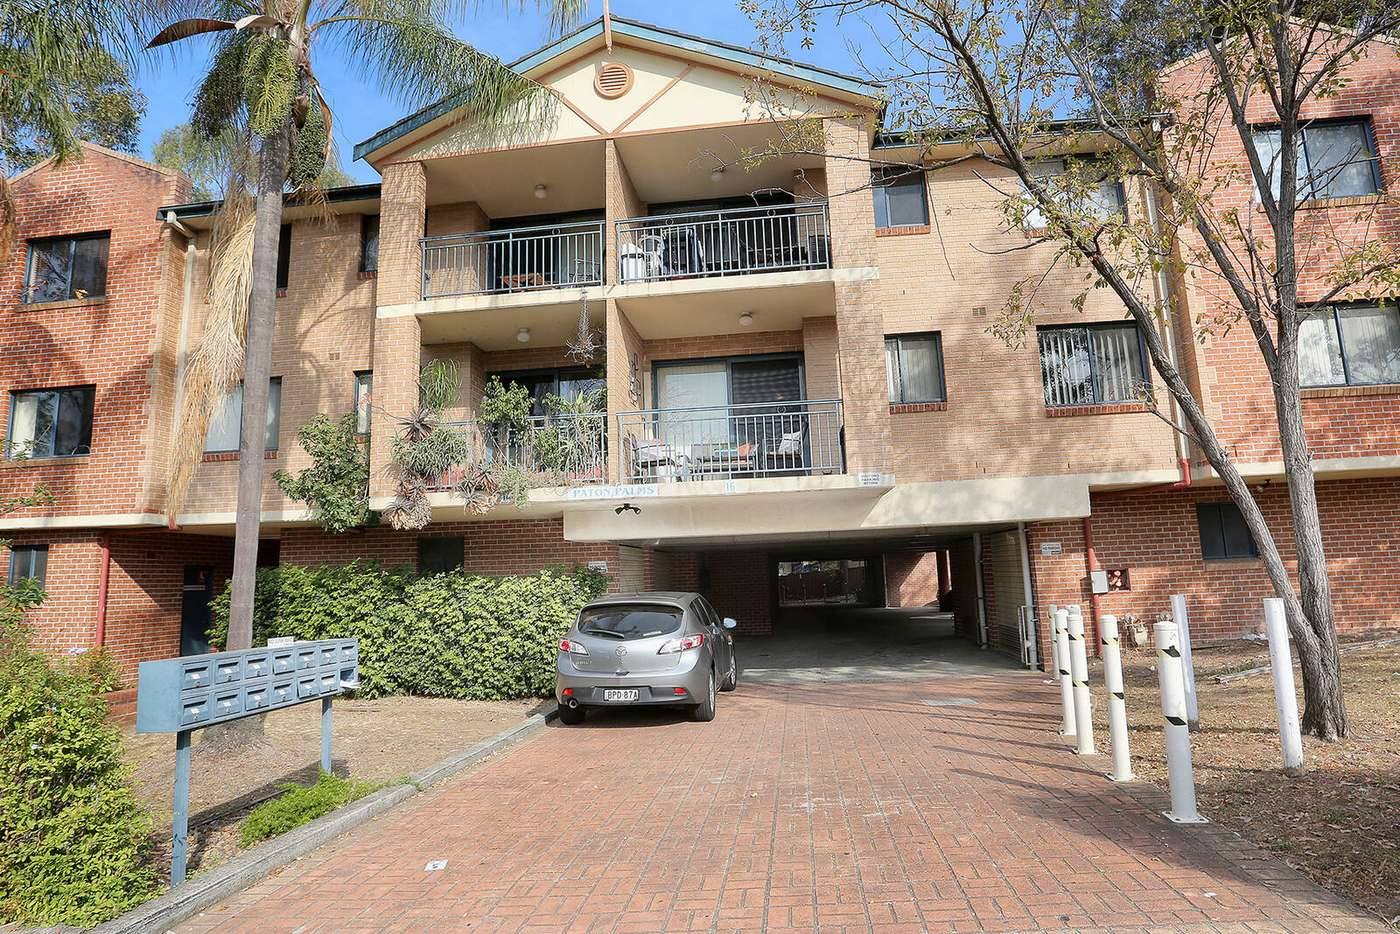 Main view of Homely apartment listing, 7/14-16 Paton Street, Merrylands NSW 2160